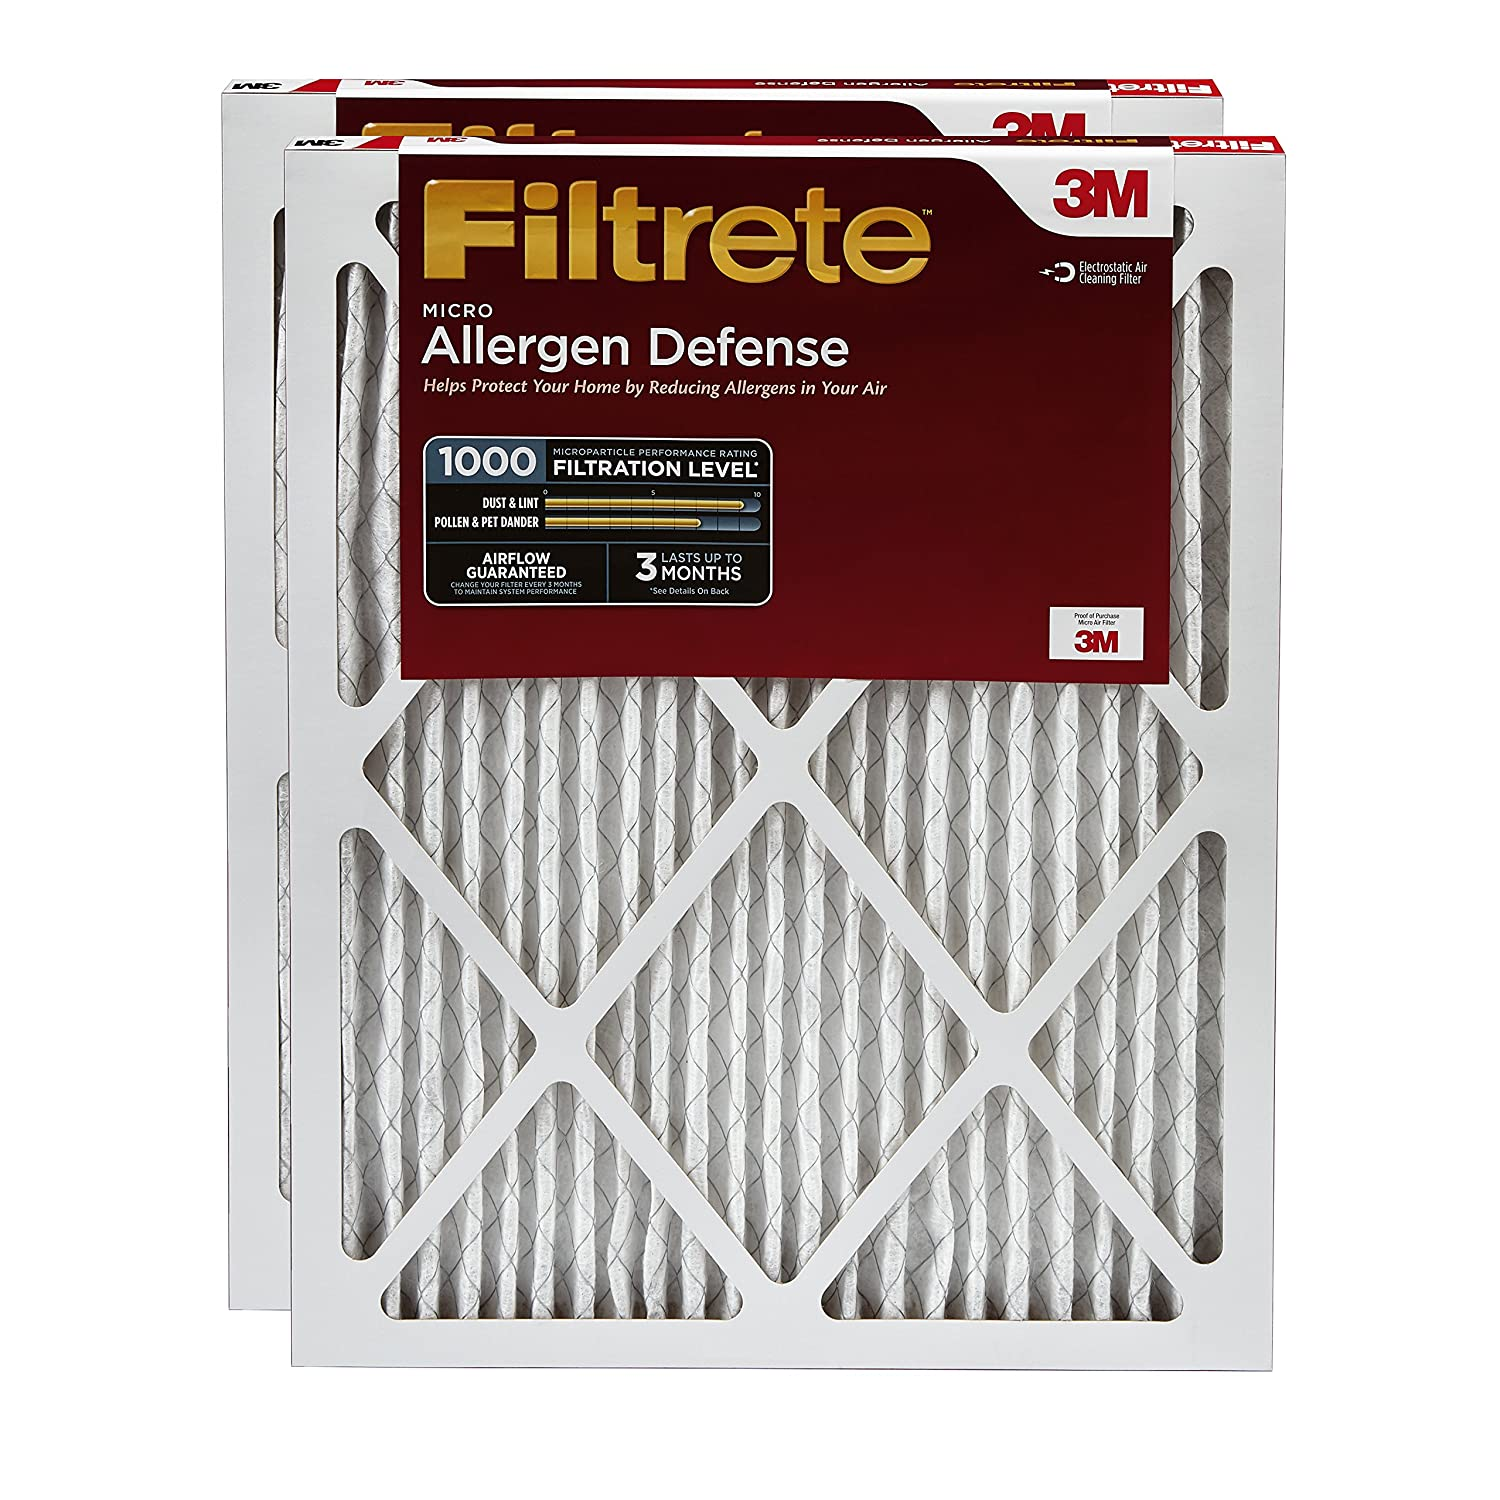 Filtrete 20x30x1, AC Furnace Air Filter, MPR 1000, Micro Allergen Defence, 2-Pack